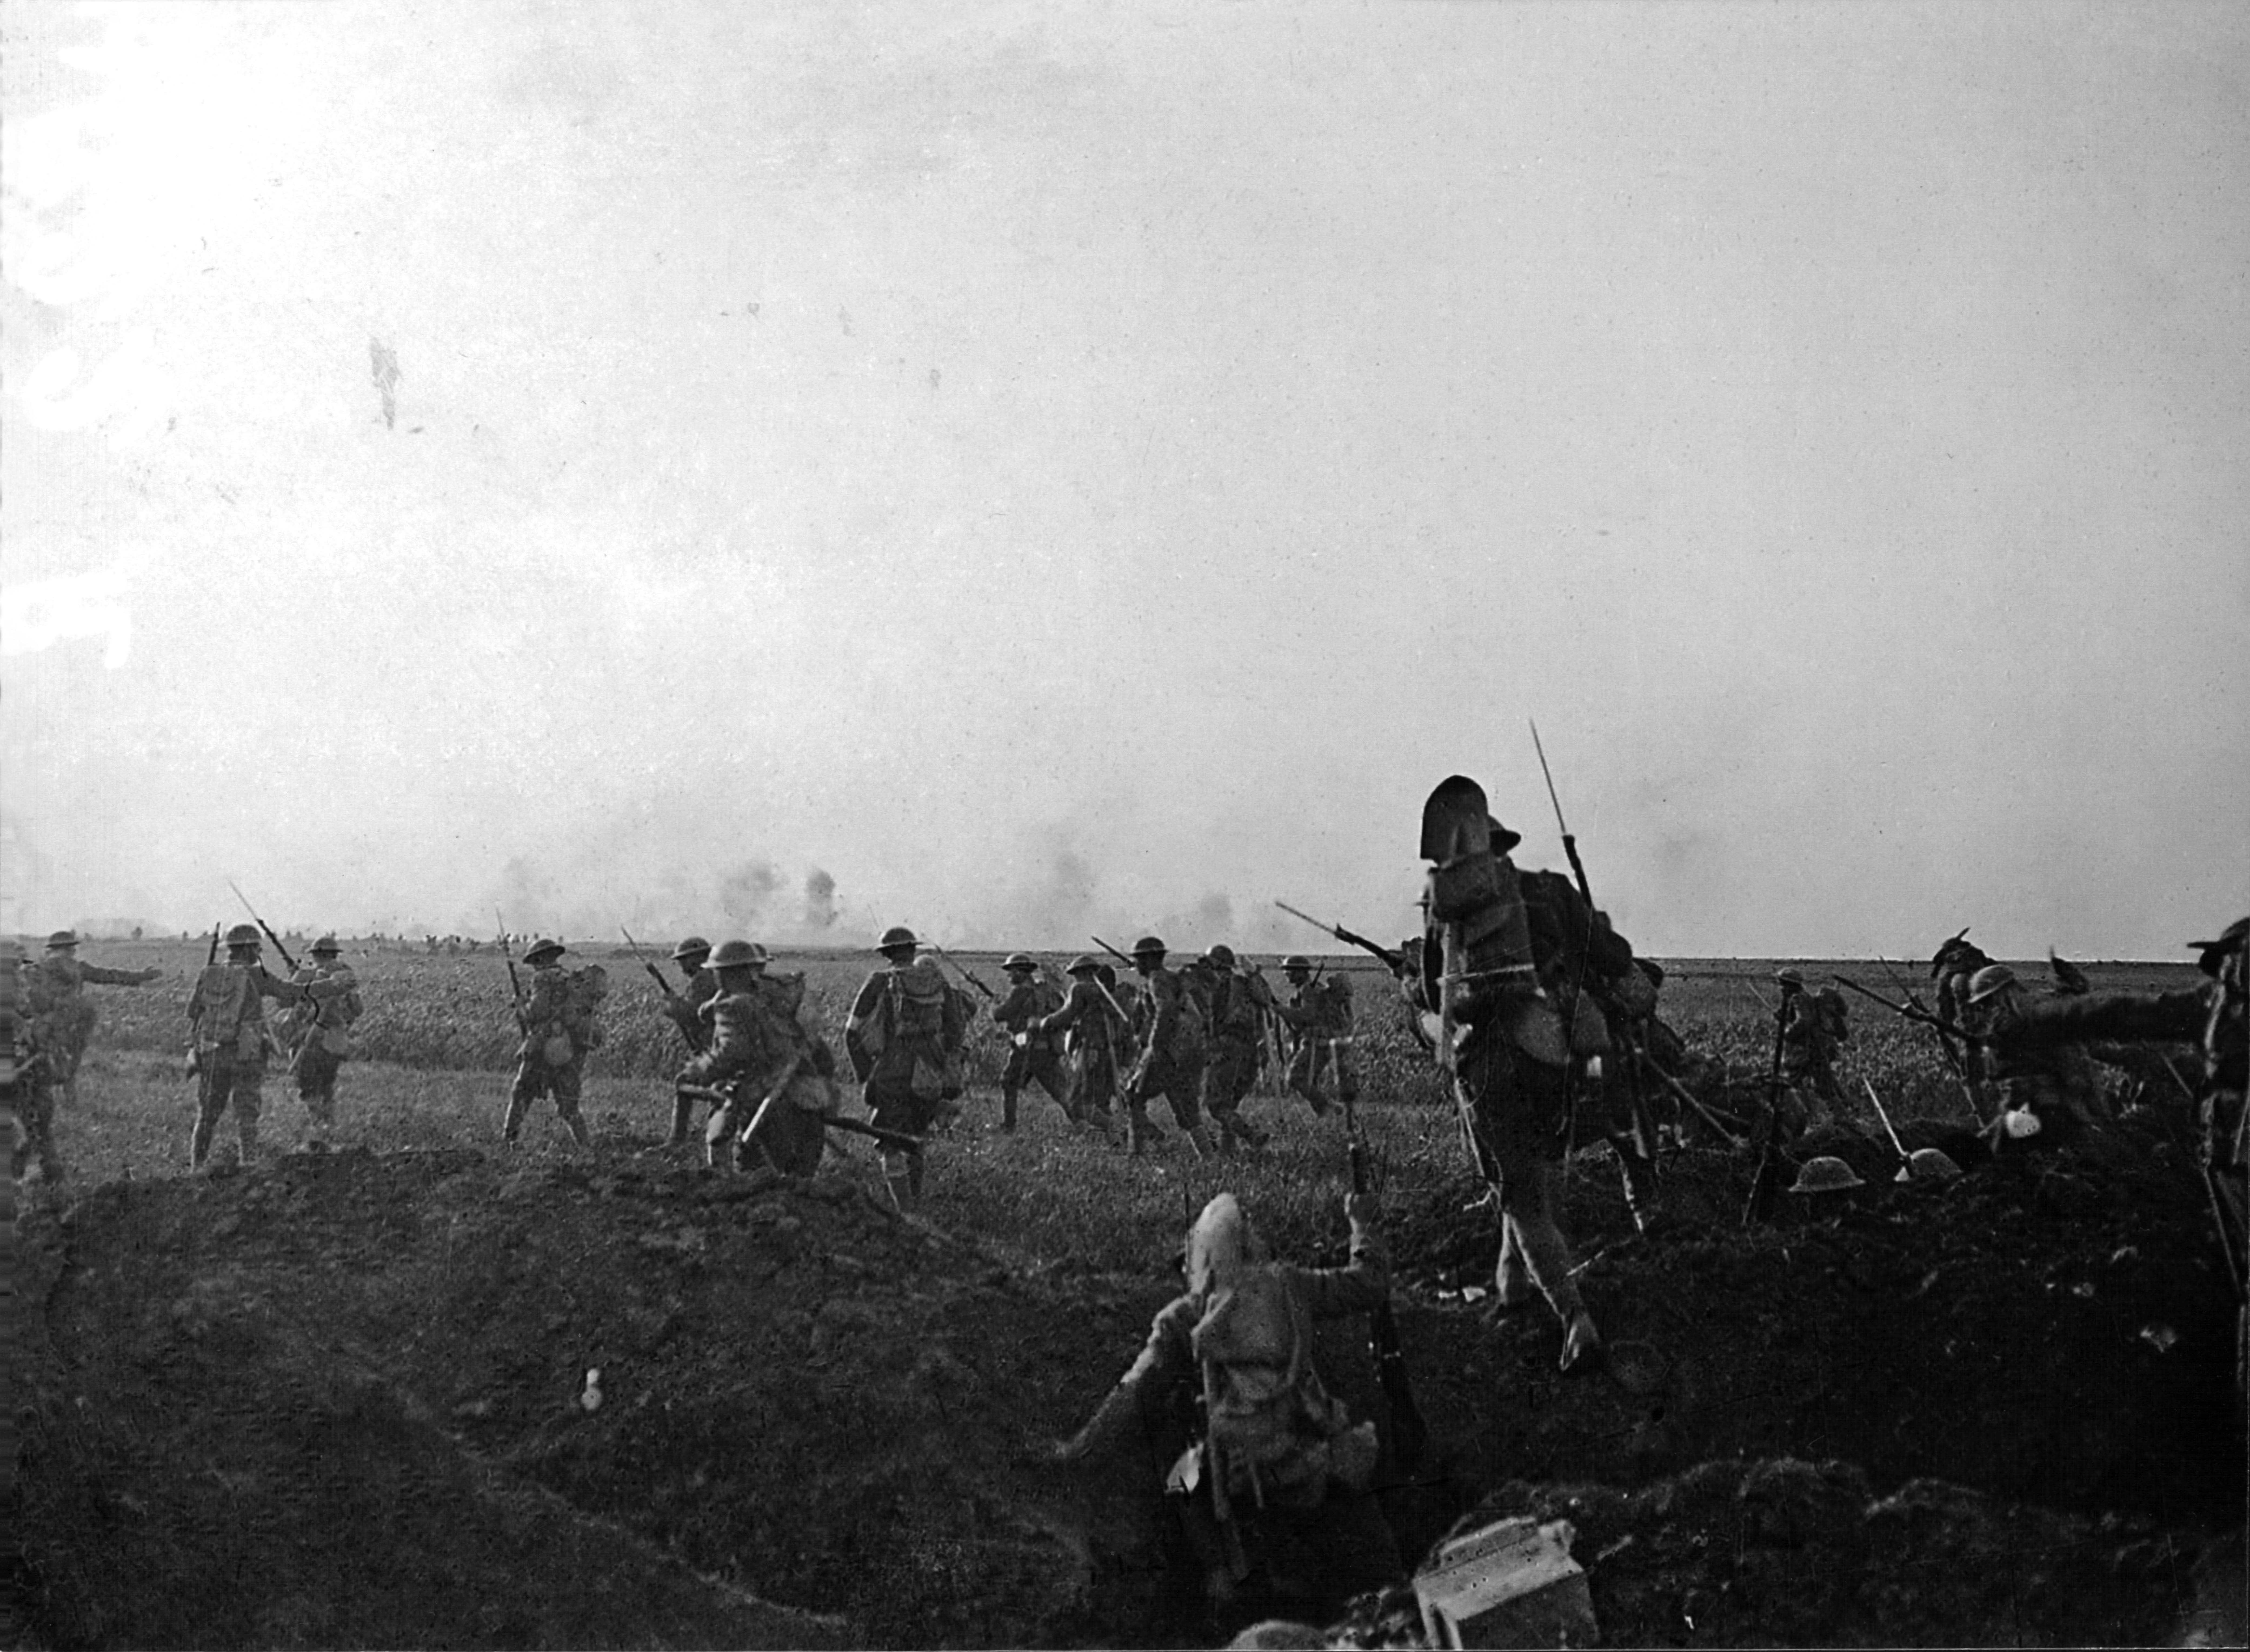 The Battle of Cantigny took place May 28-31, 1918.